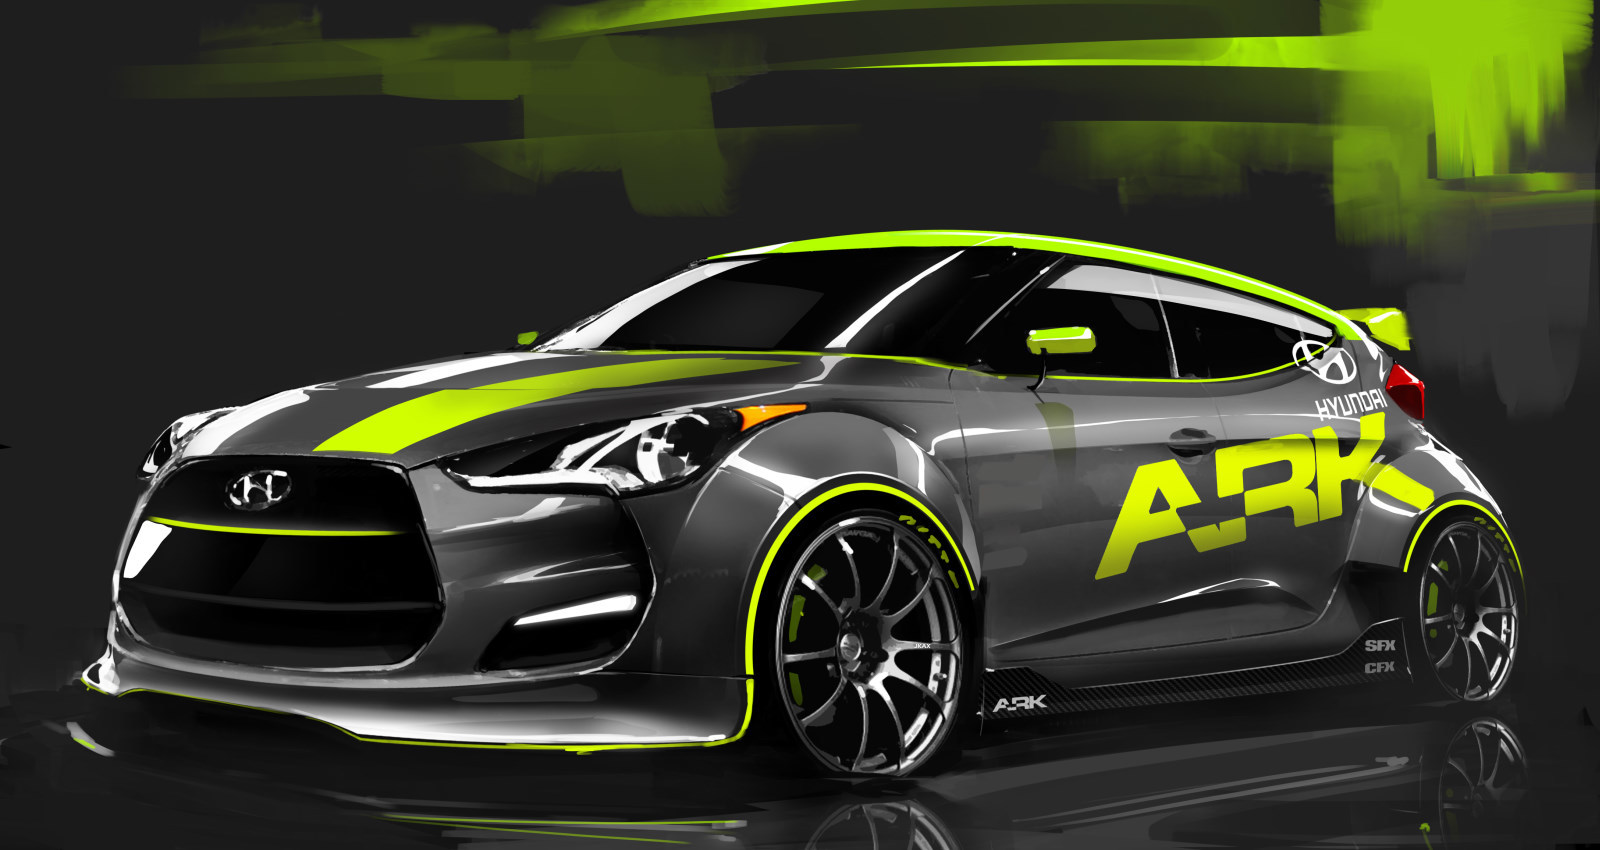 Hyundai Veloster Turbo Hyundai Fan Art 26422015 Fanpop